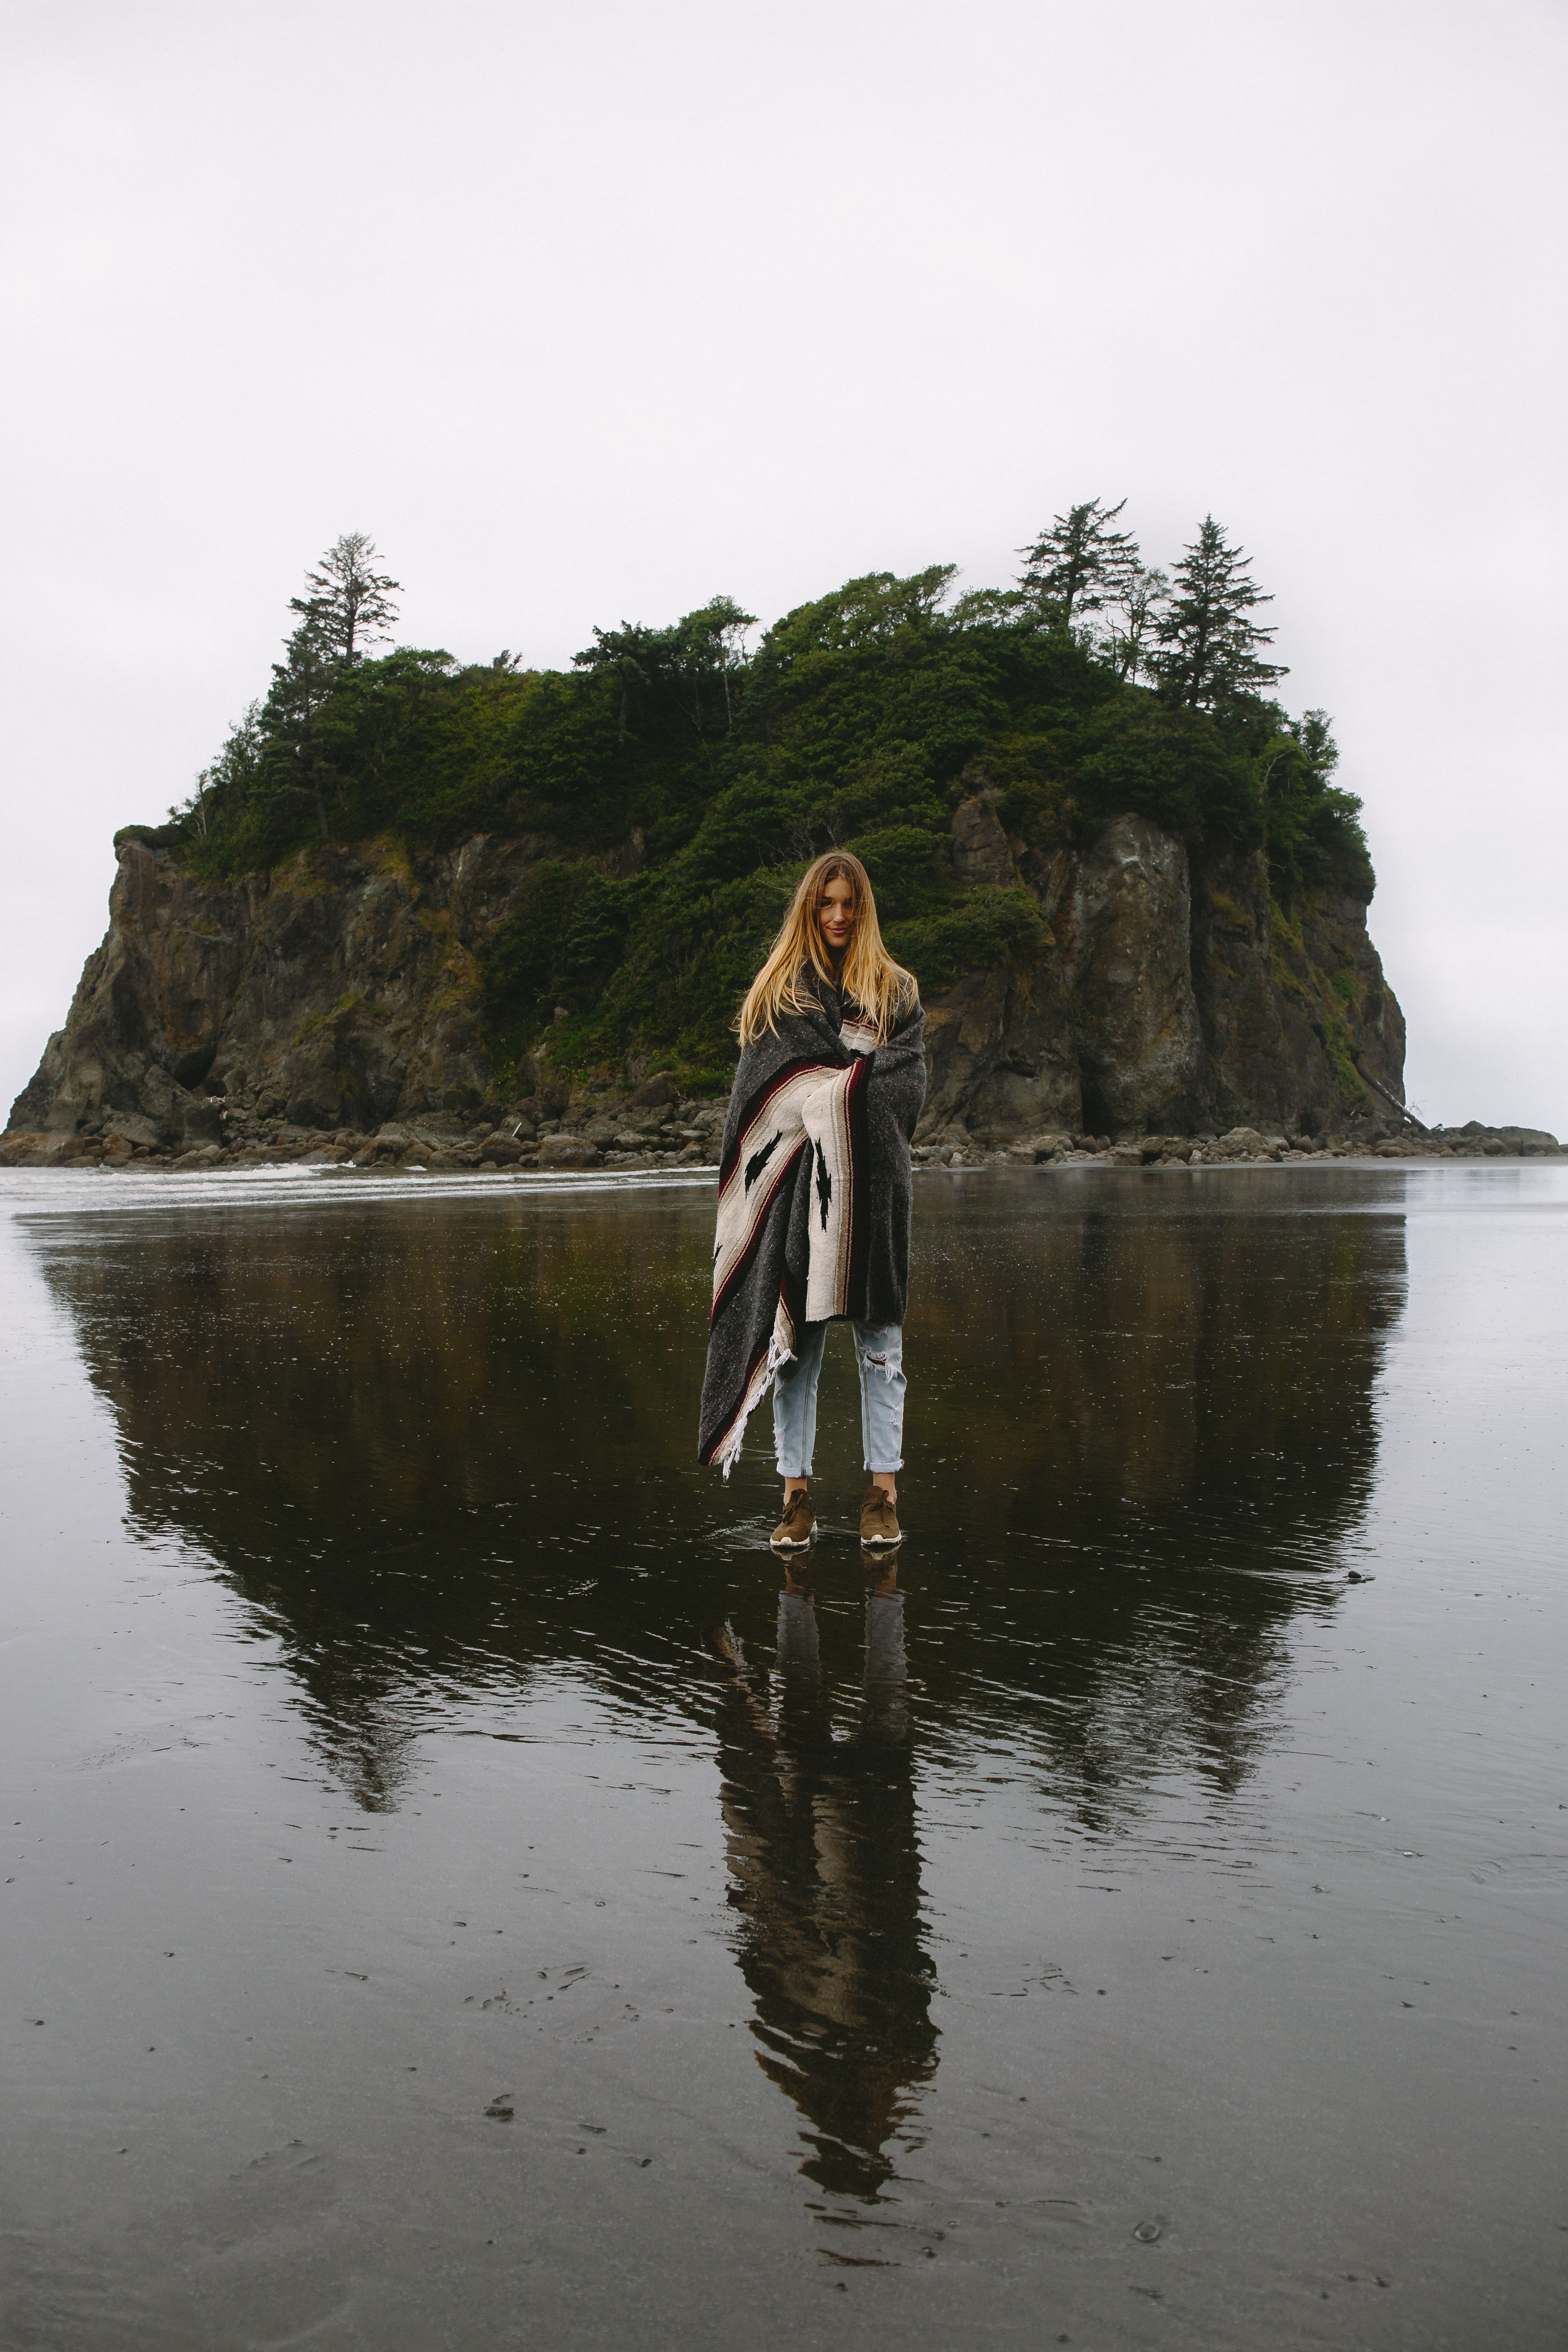 Nicole Knox X Olympic National Park, Forks, Washington